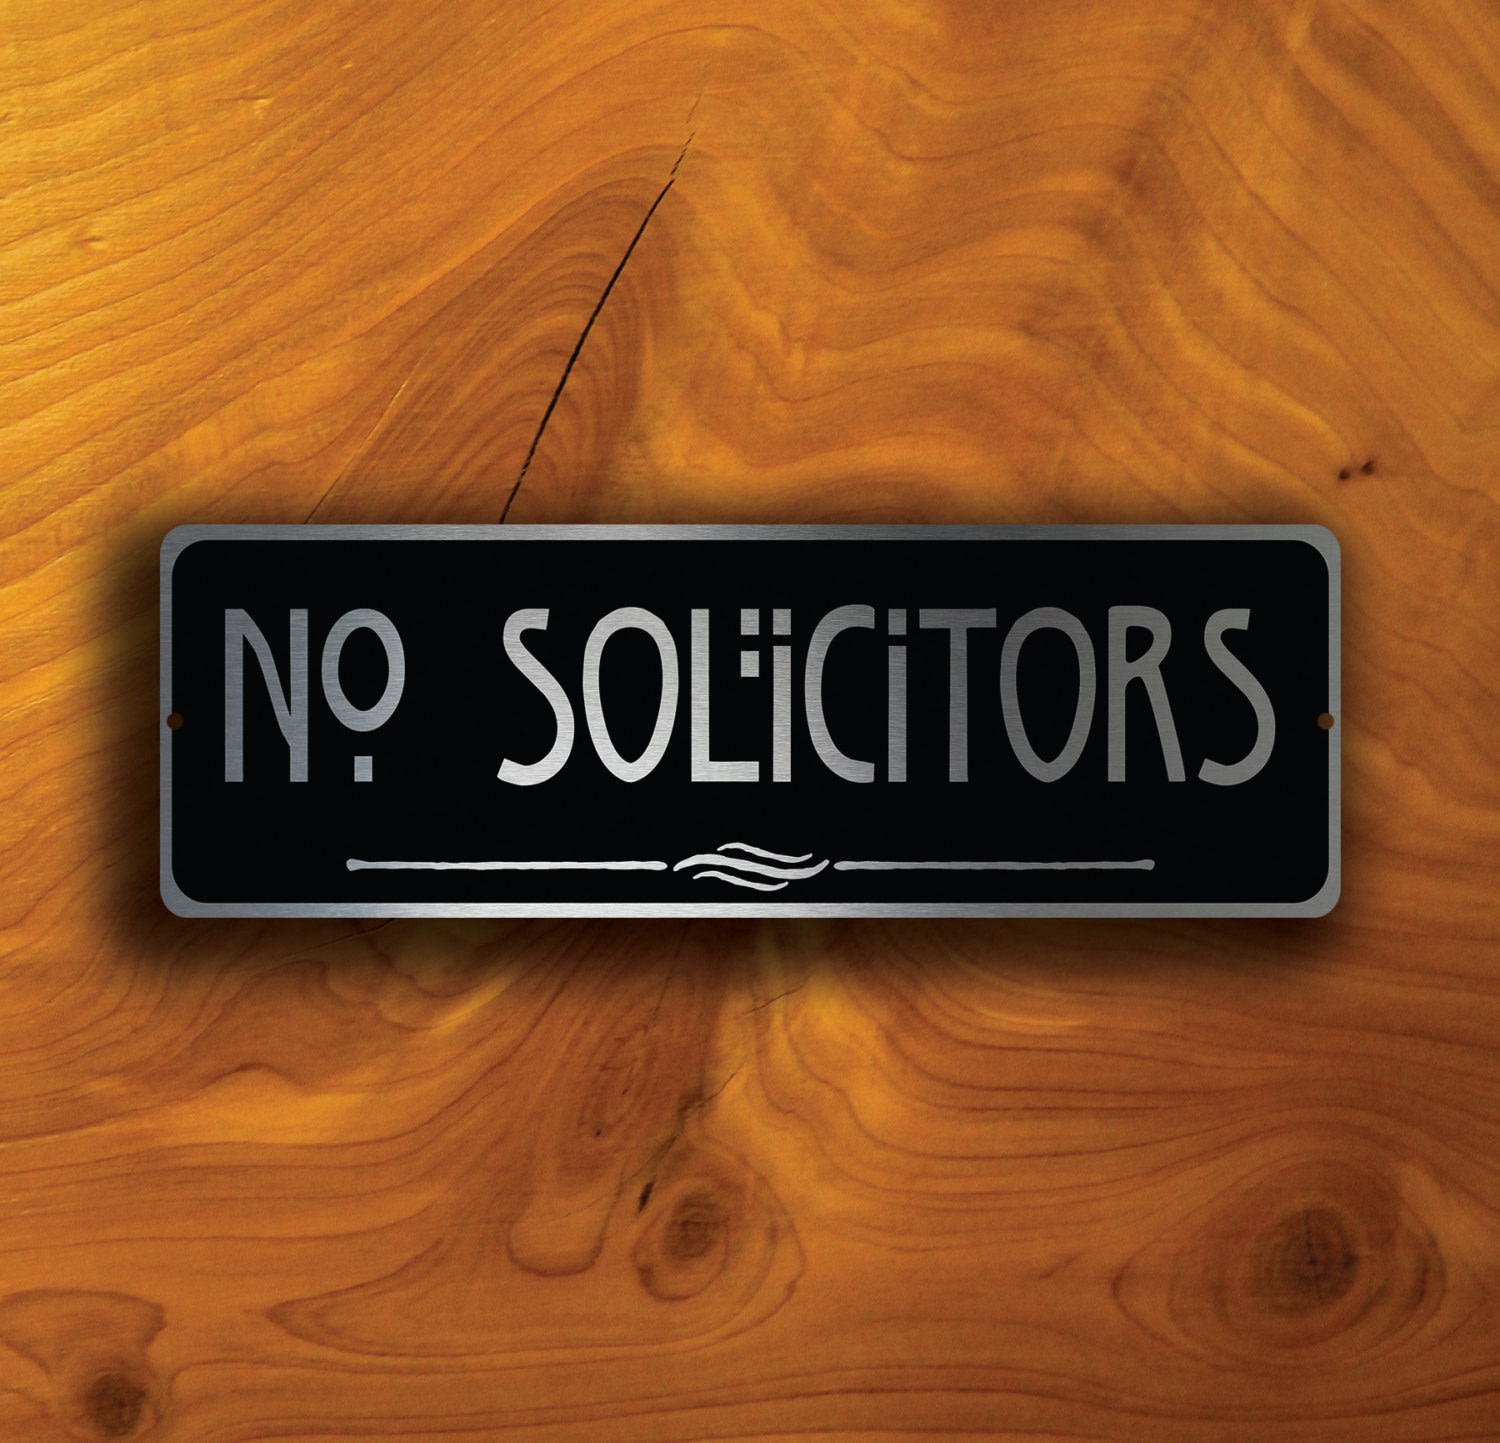 NO SOLICITORS SIGN